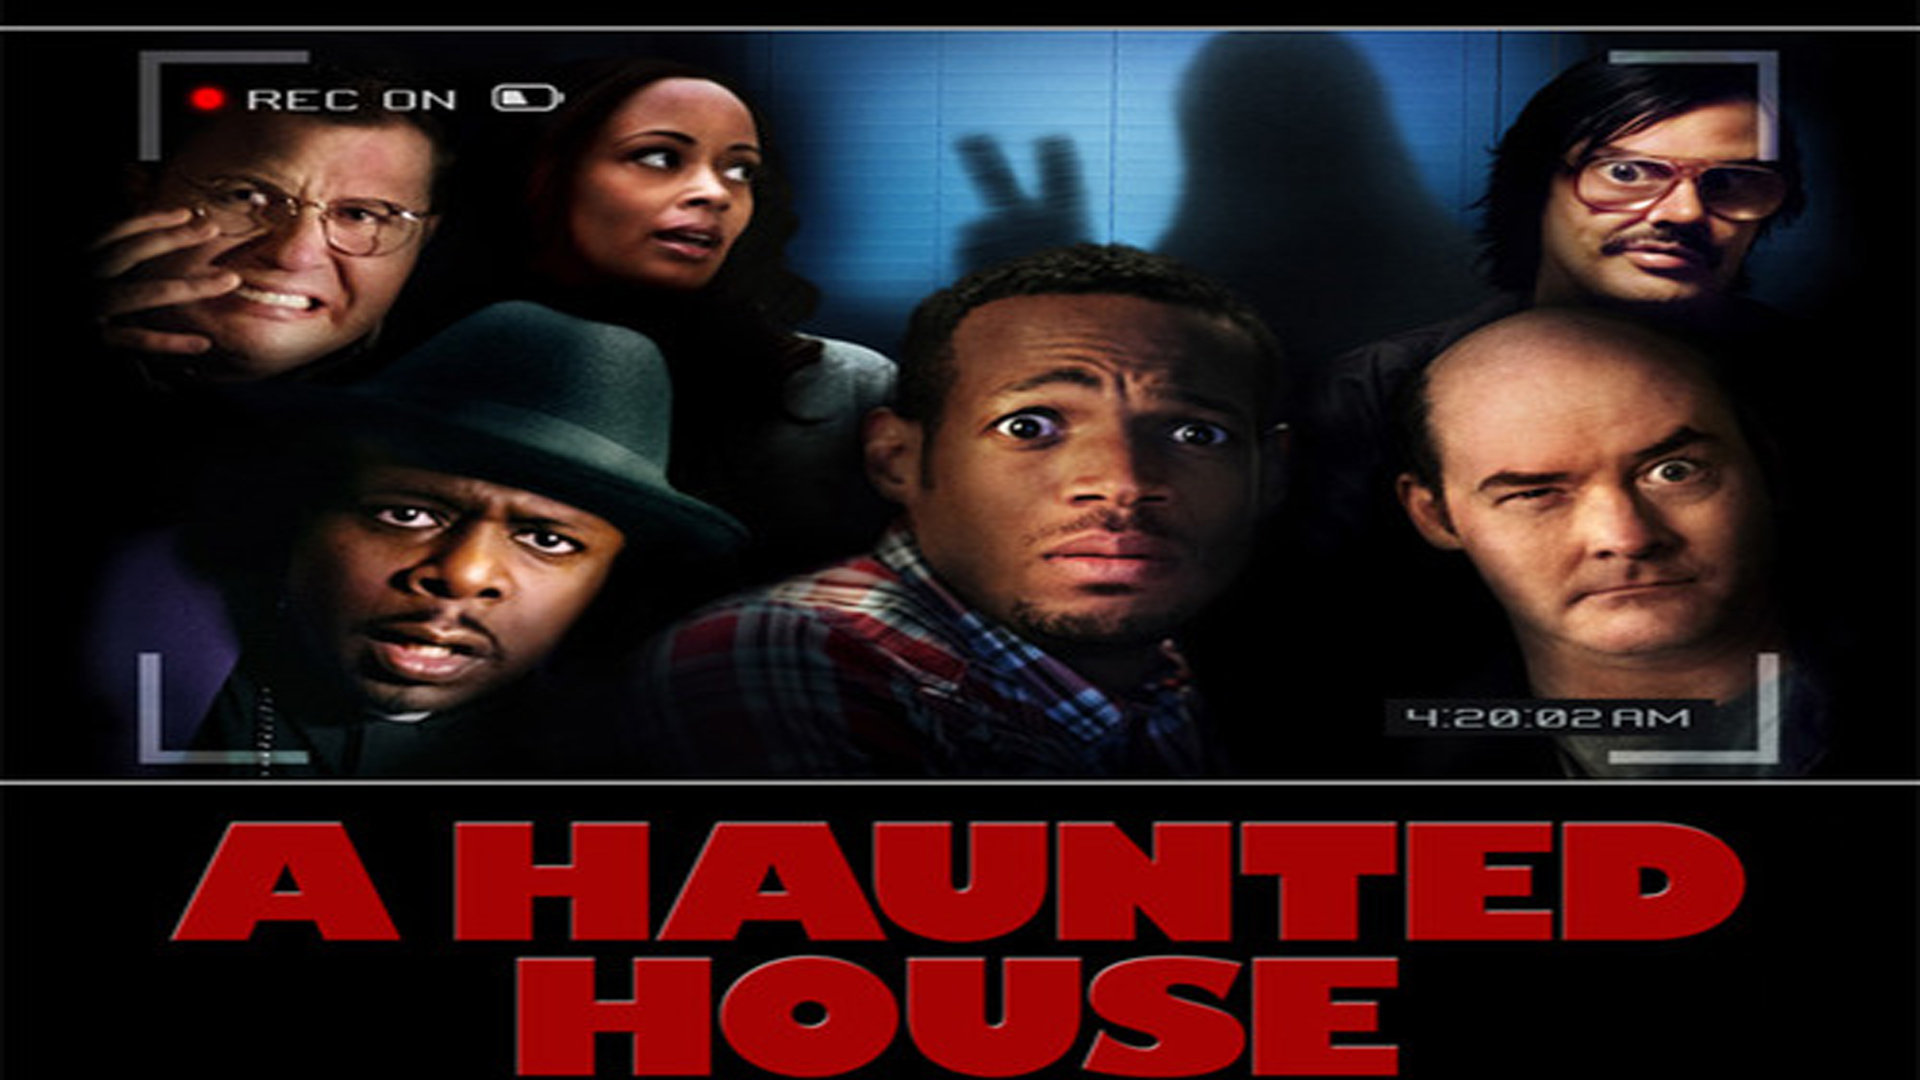 a haunted house full movie online free no download